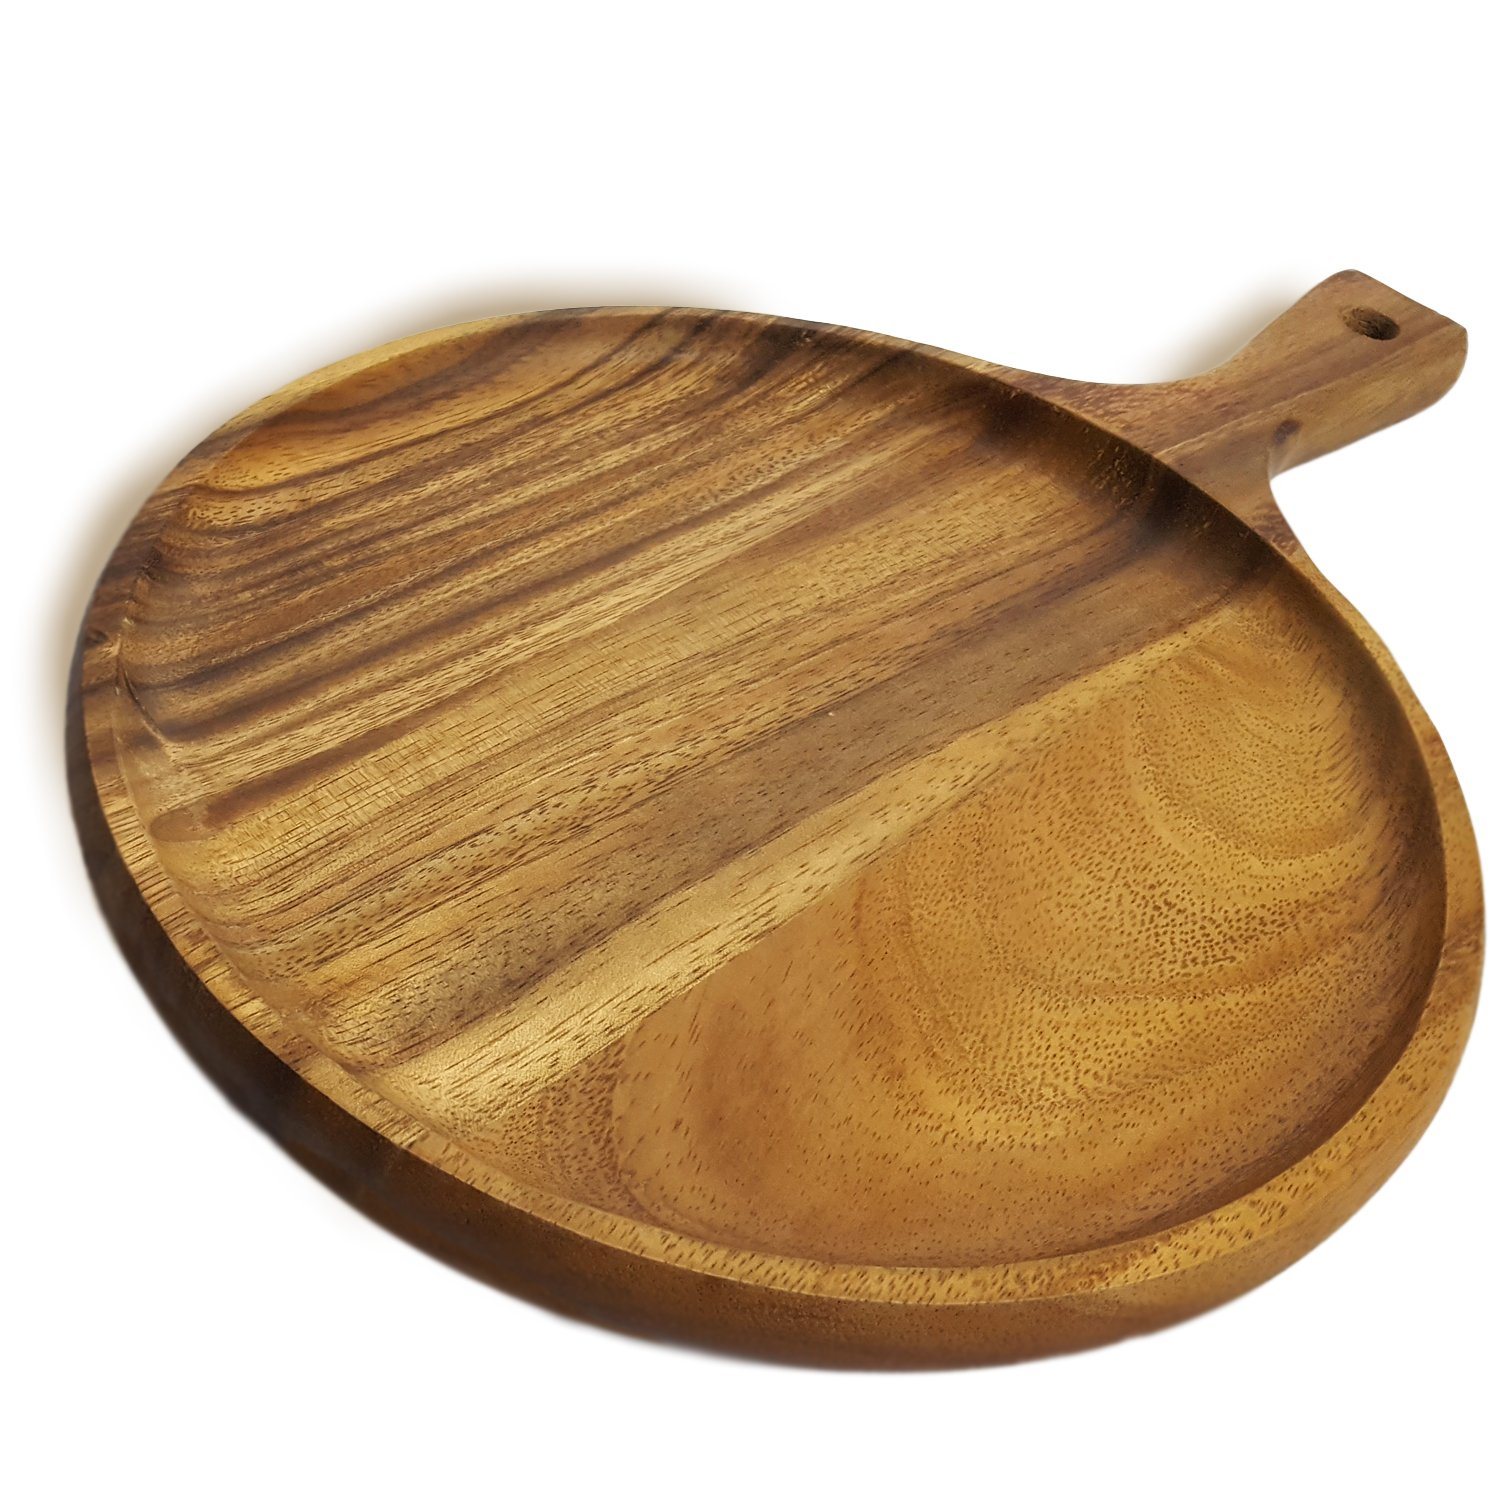 RoRo Acacia Wood Round Tray for Small Pizzas and Appetizers, 14 x 10 Inch by roro (Image #1)